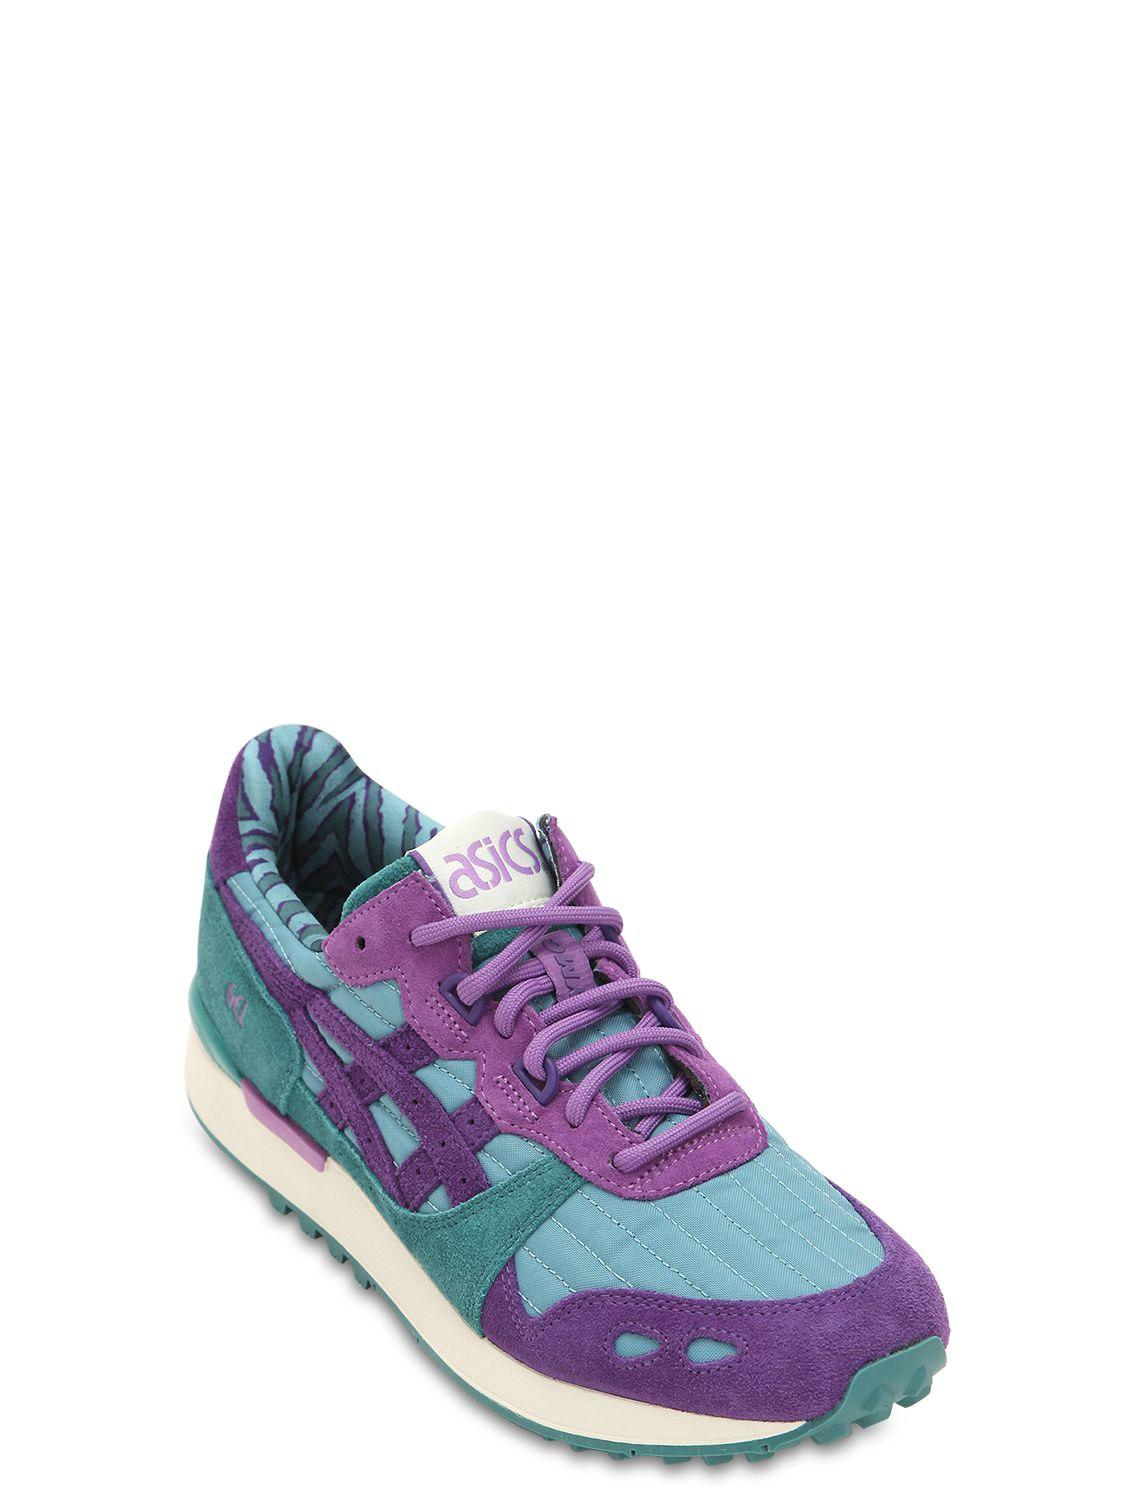 874cac66 Lyst - Asics Gel-lyte Xt Sneakers for Men